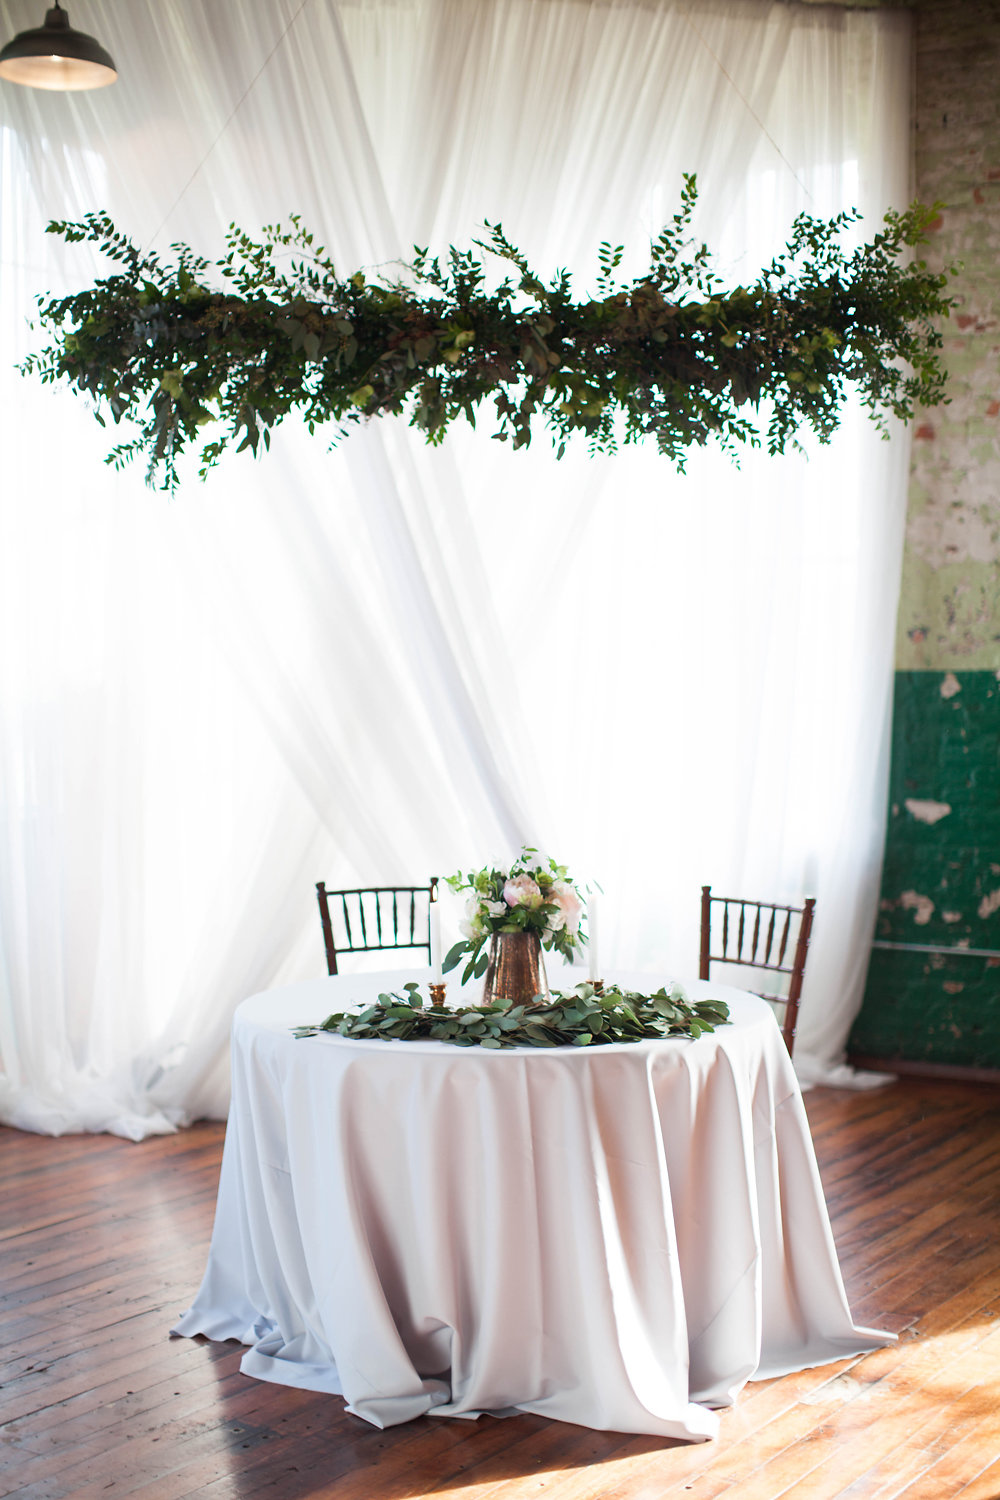 Nothing fussy here! - White draping, minimal beautiful greenery, and TONS of light in an industrial setting. Vintage pieces can be incorporated with all style.